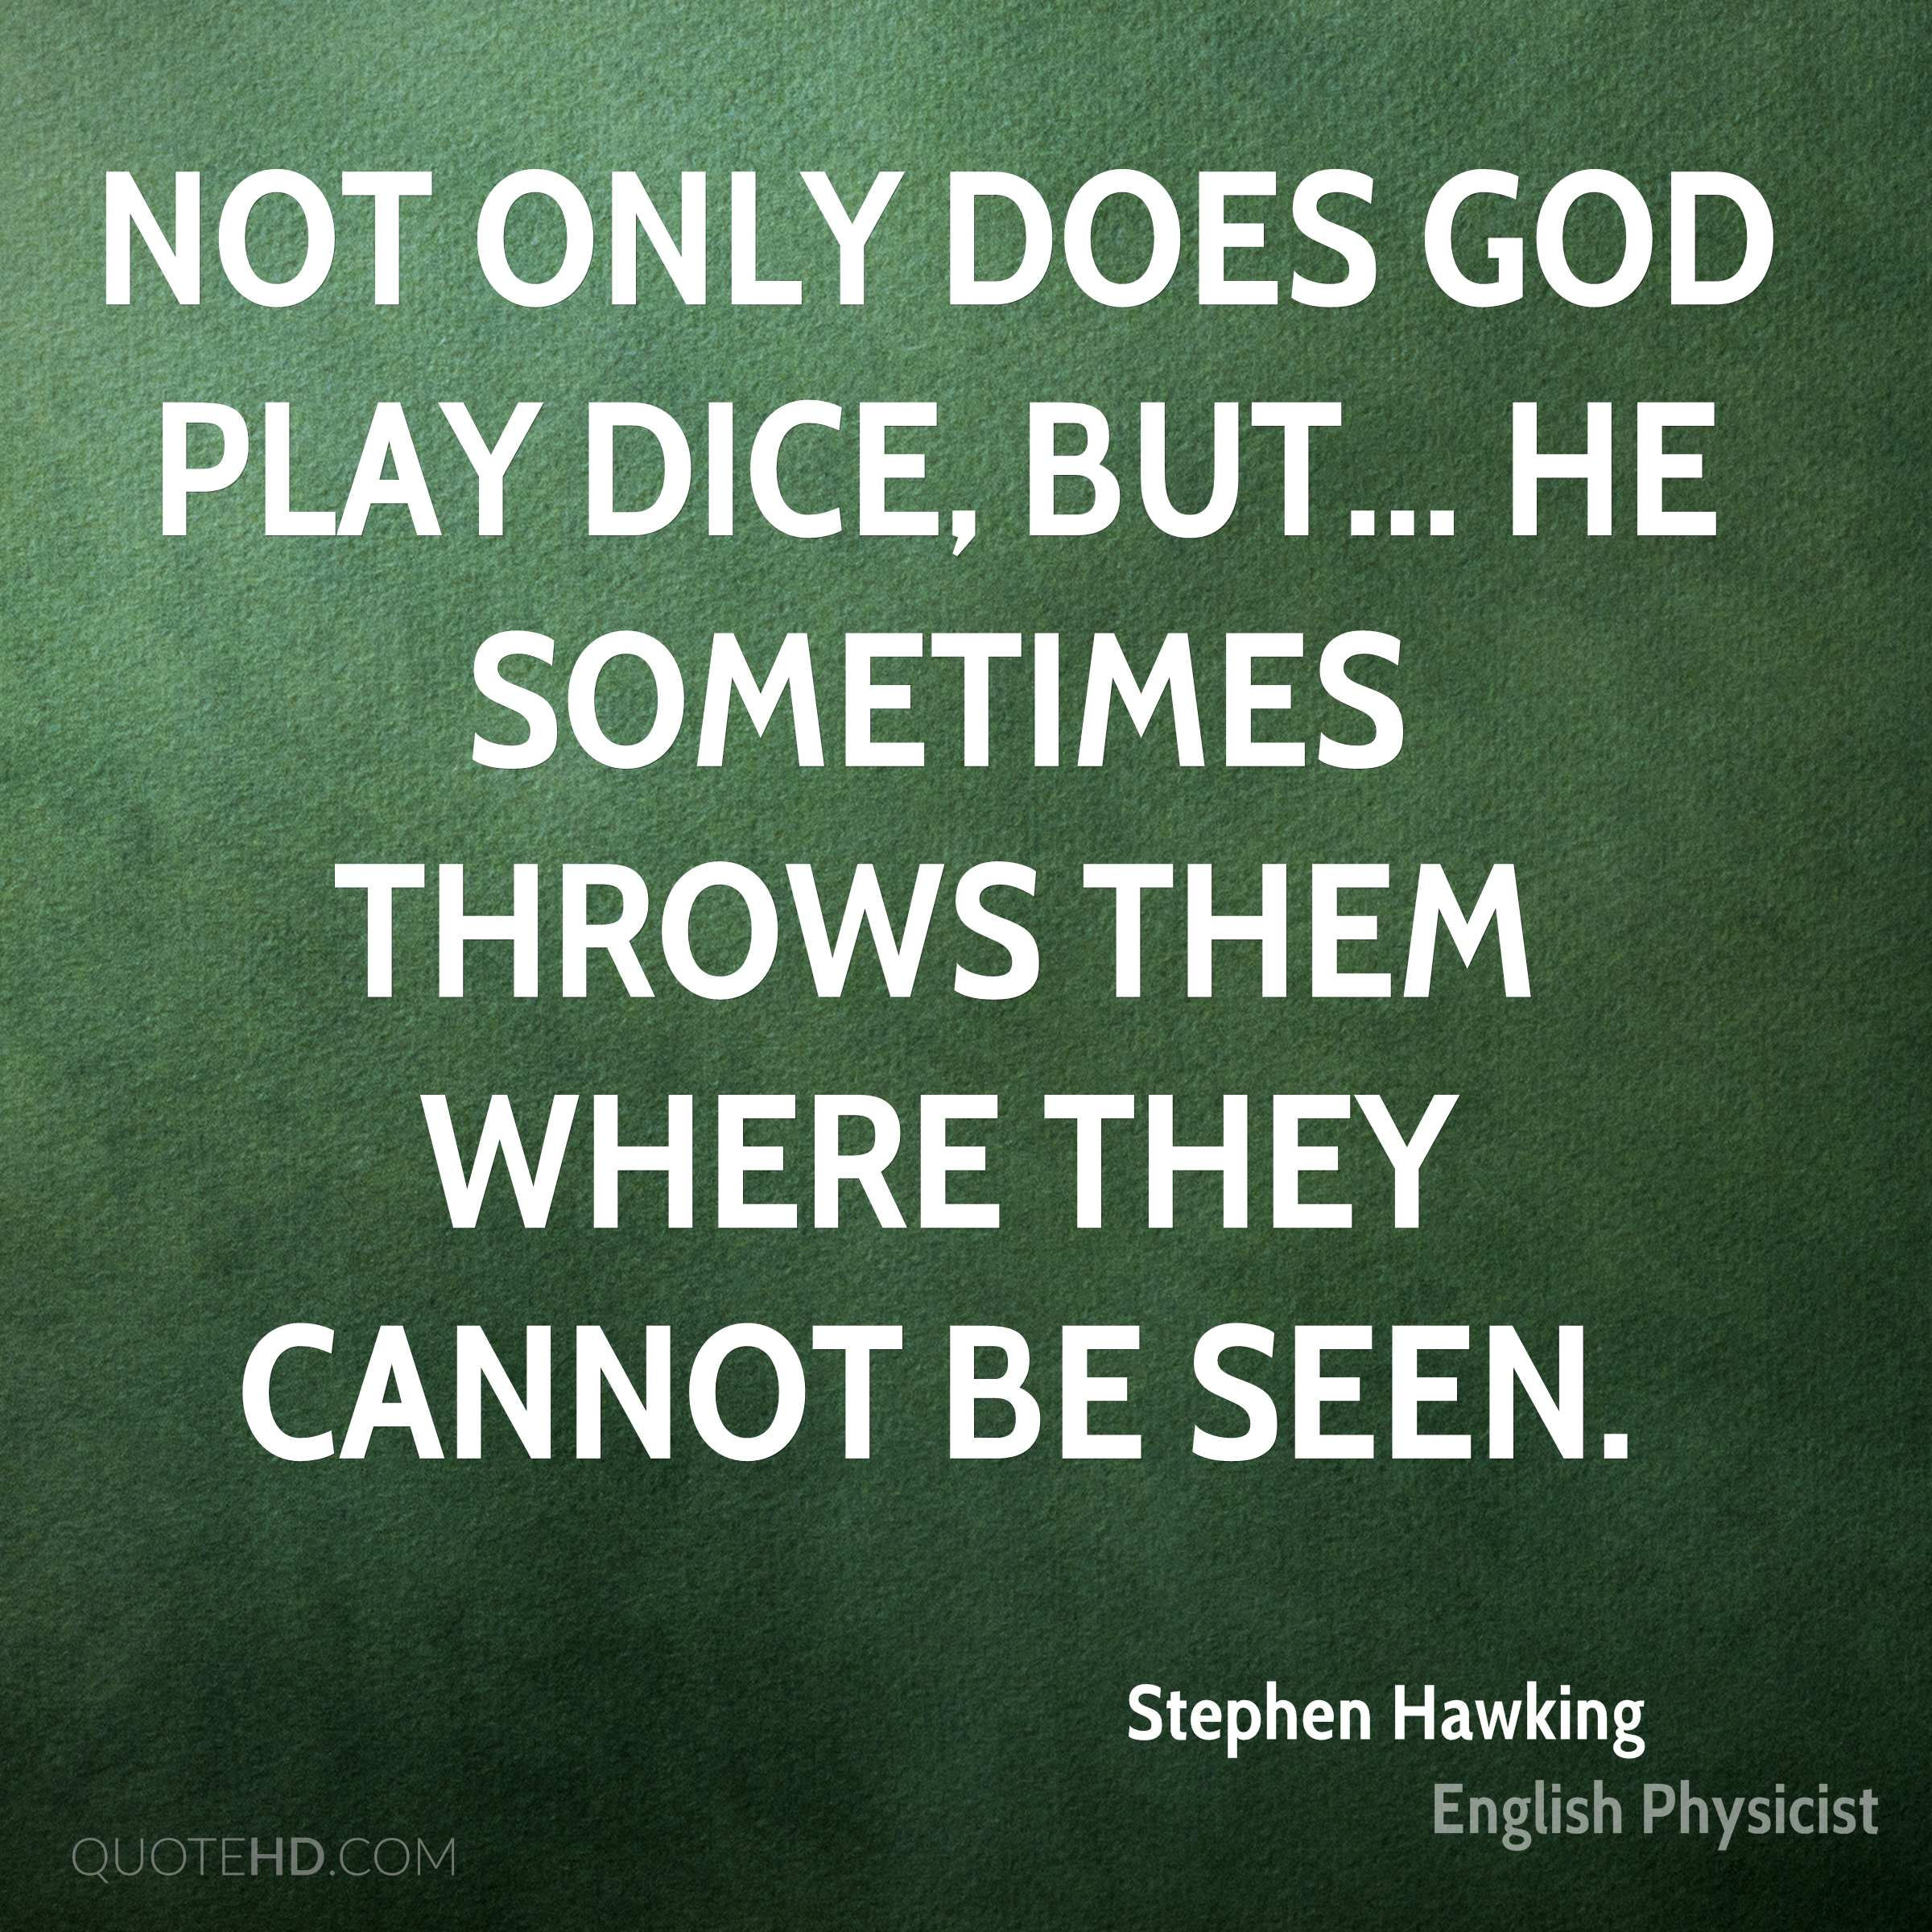 Not only does God play dice, but... he sometimes throws them where they cannot be seen.